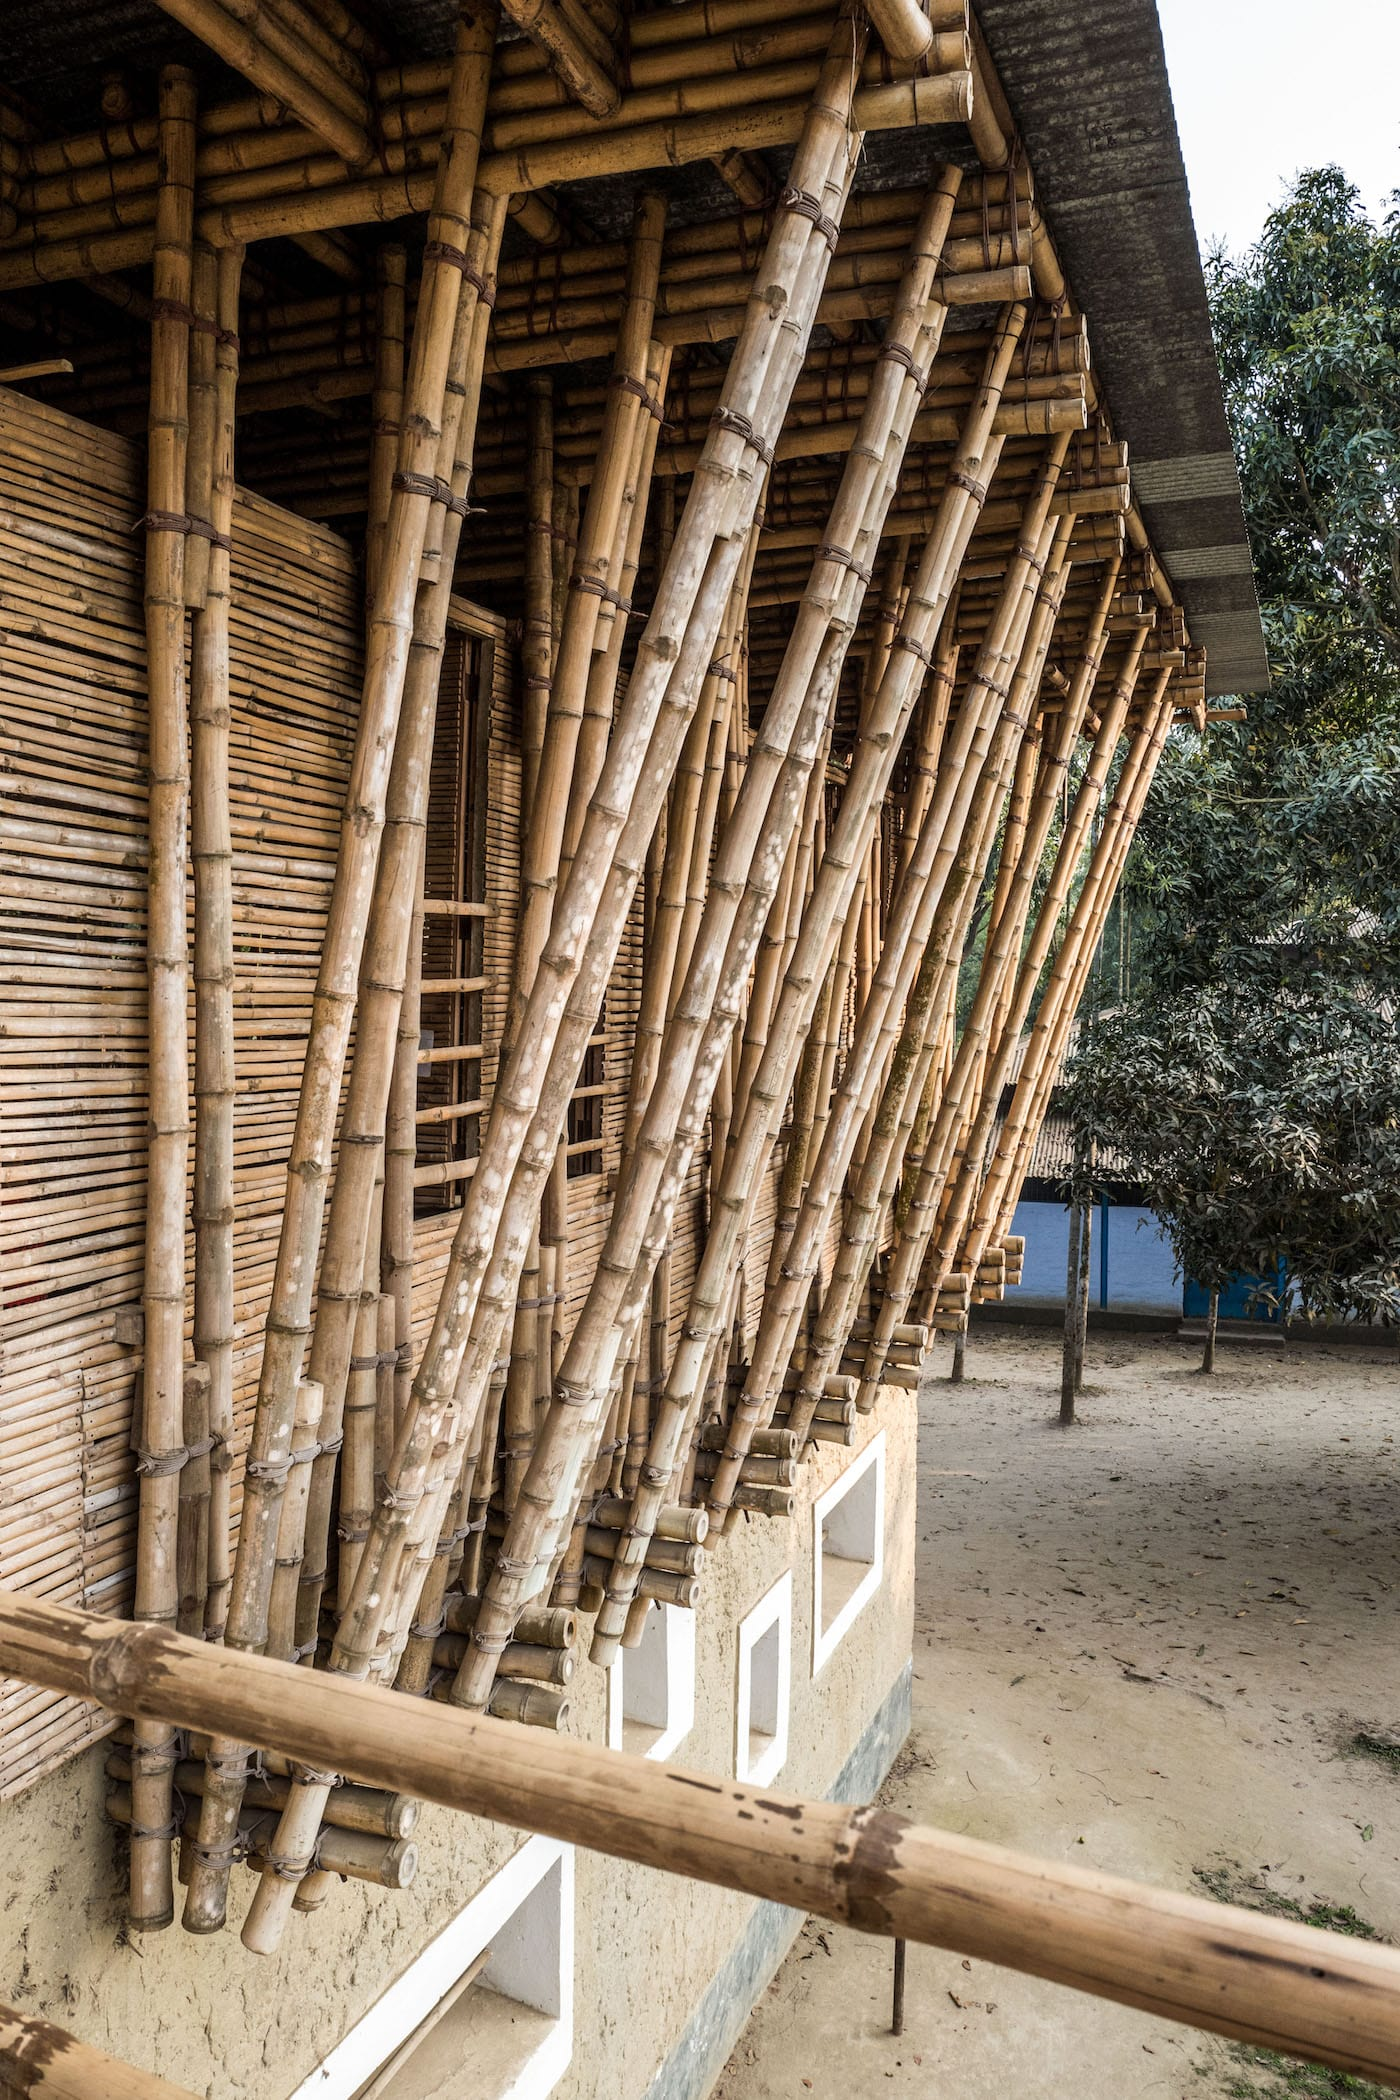 View of bamboo structure at METI School in Bangladesh by Anna Heringer